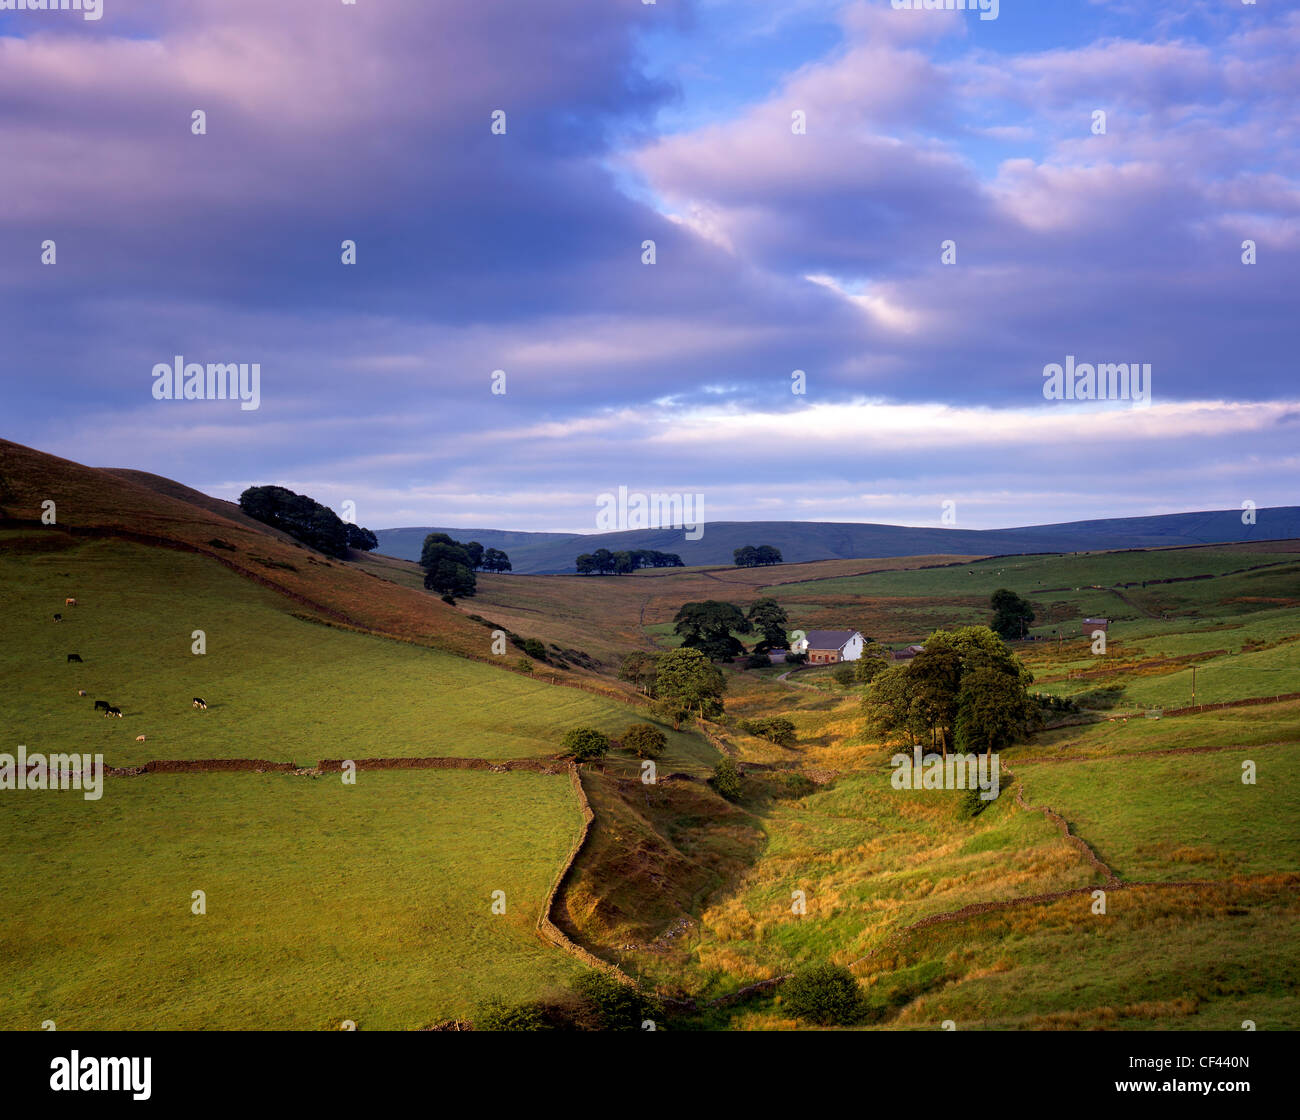 View across rolling hills in the Peak District on a summer evening. - Stock Image